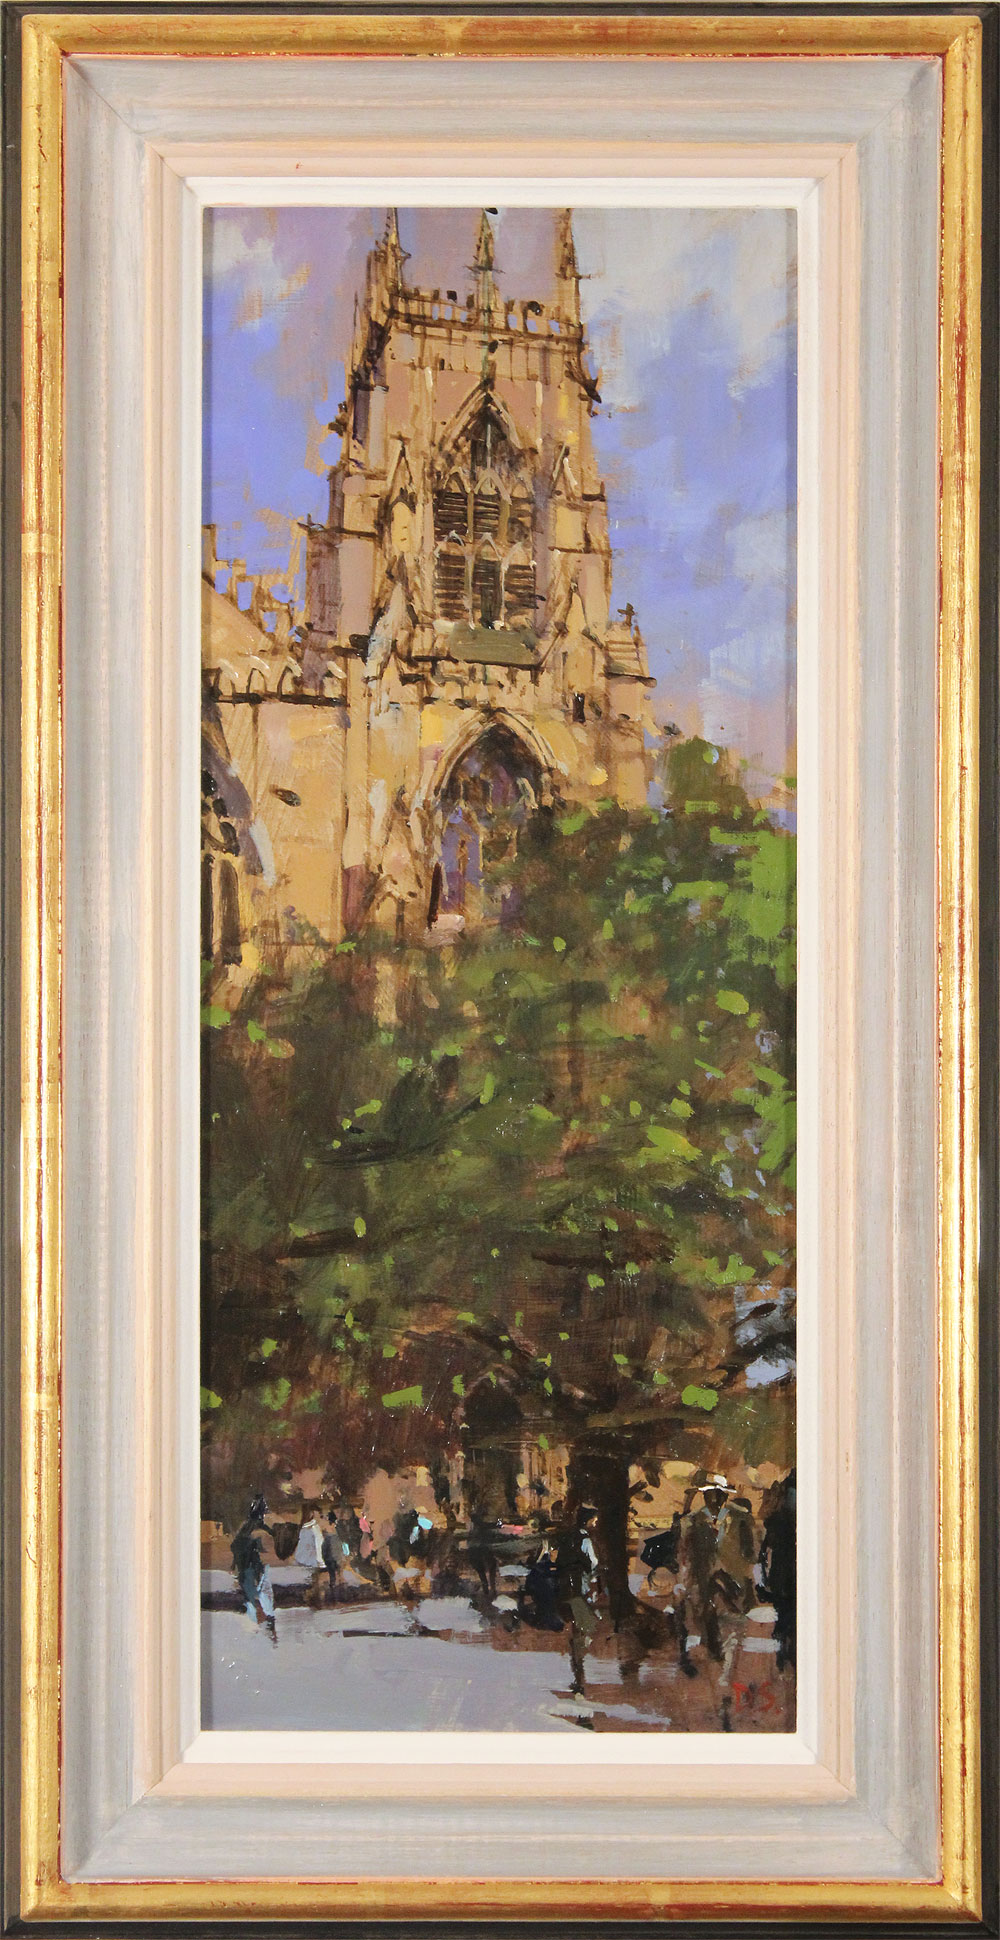 David Sawyer, RBA, Original oil painting on panel, The Panama Hat, Spring Afternoon, York Minster Click to enlarge